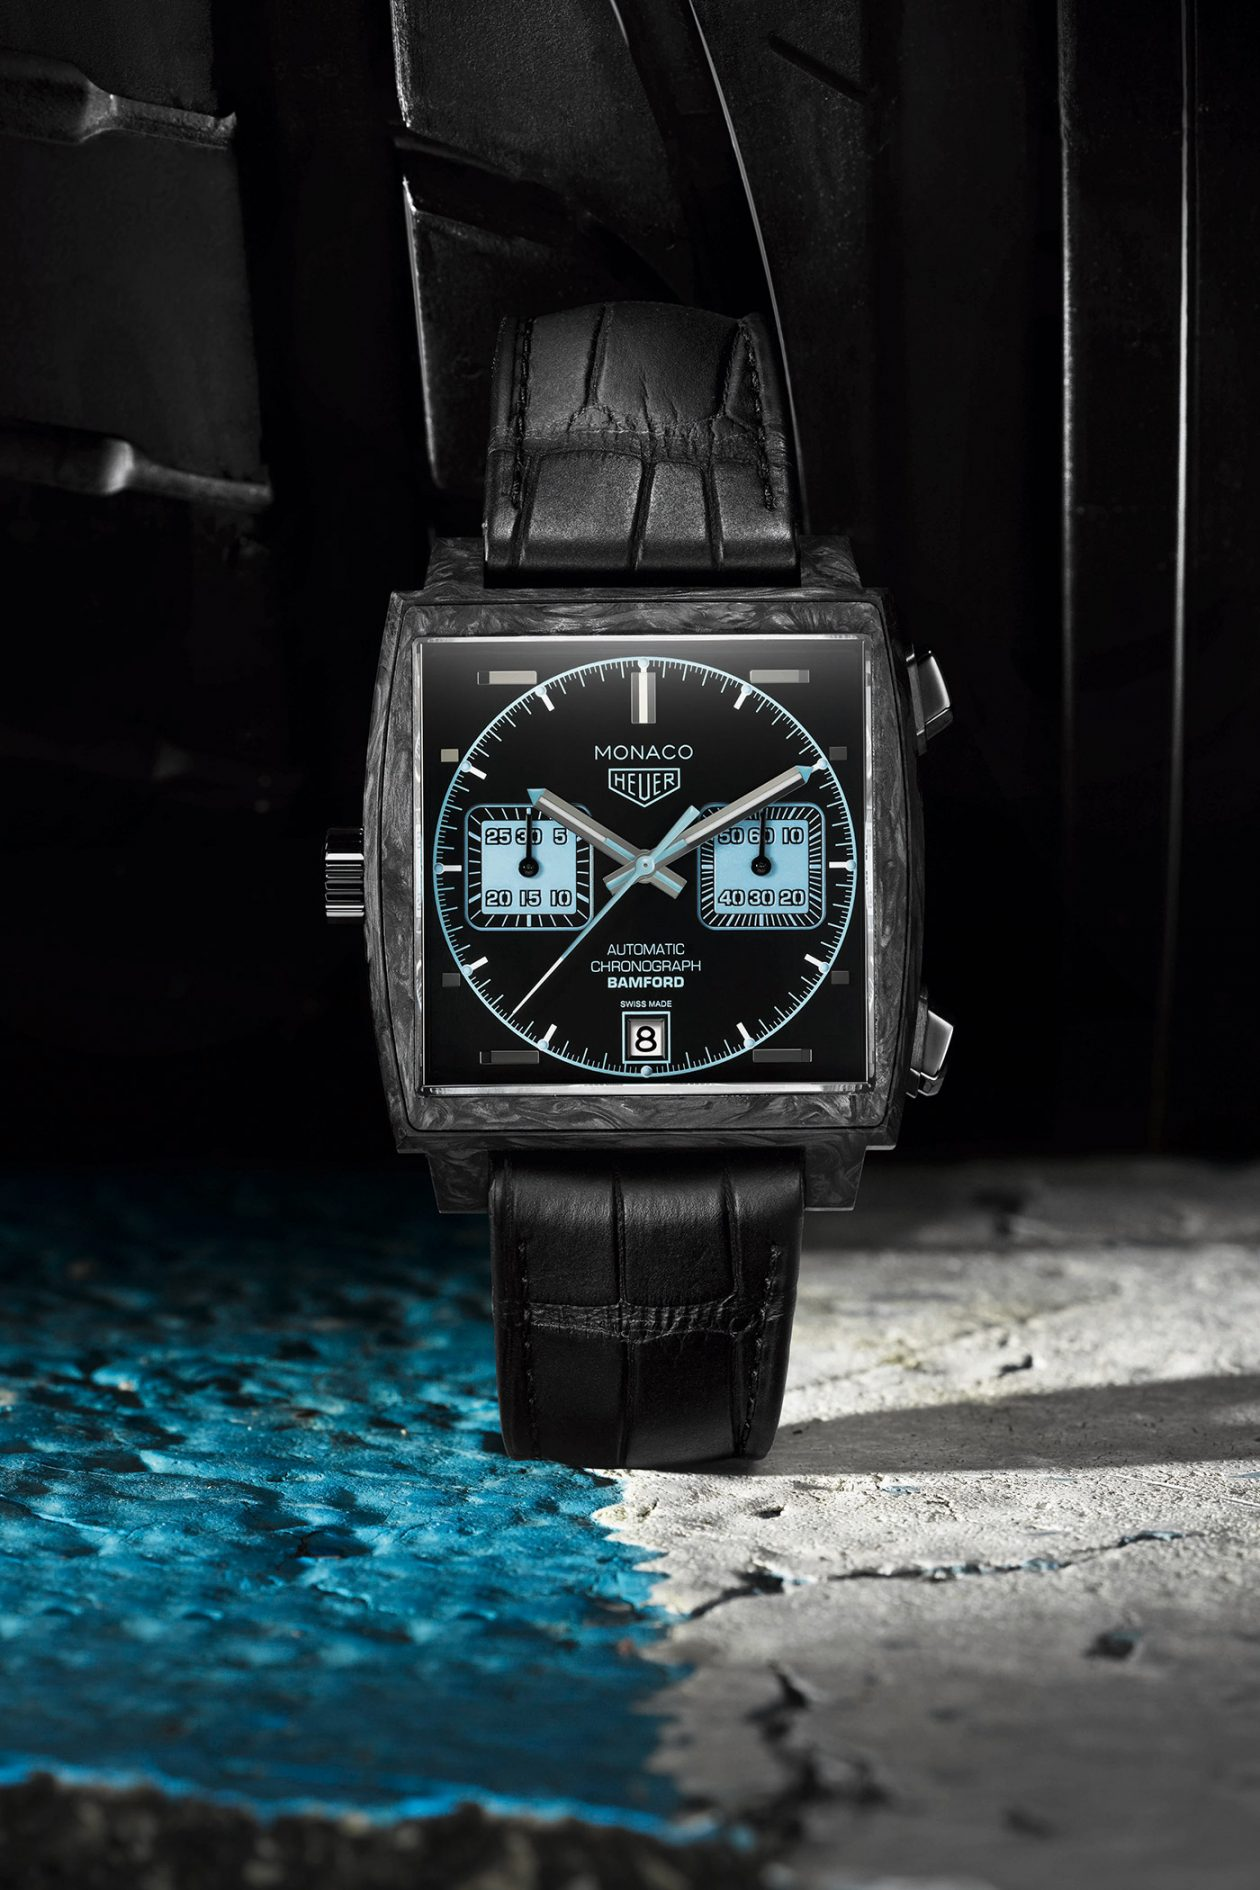 The carbon fiber copy watches have black leather straps.